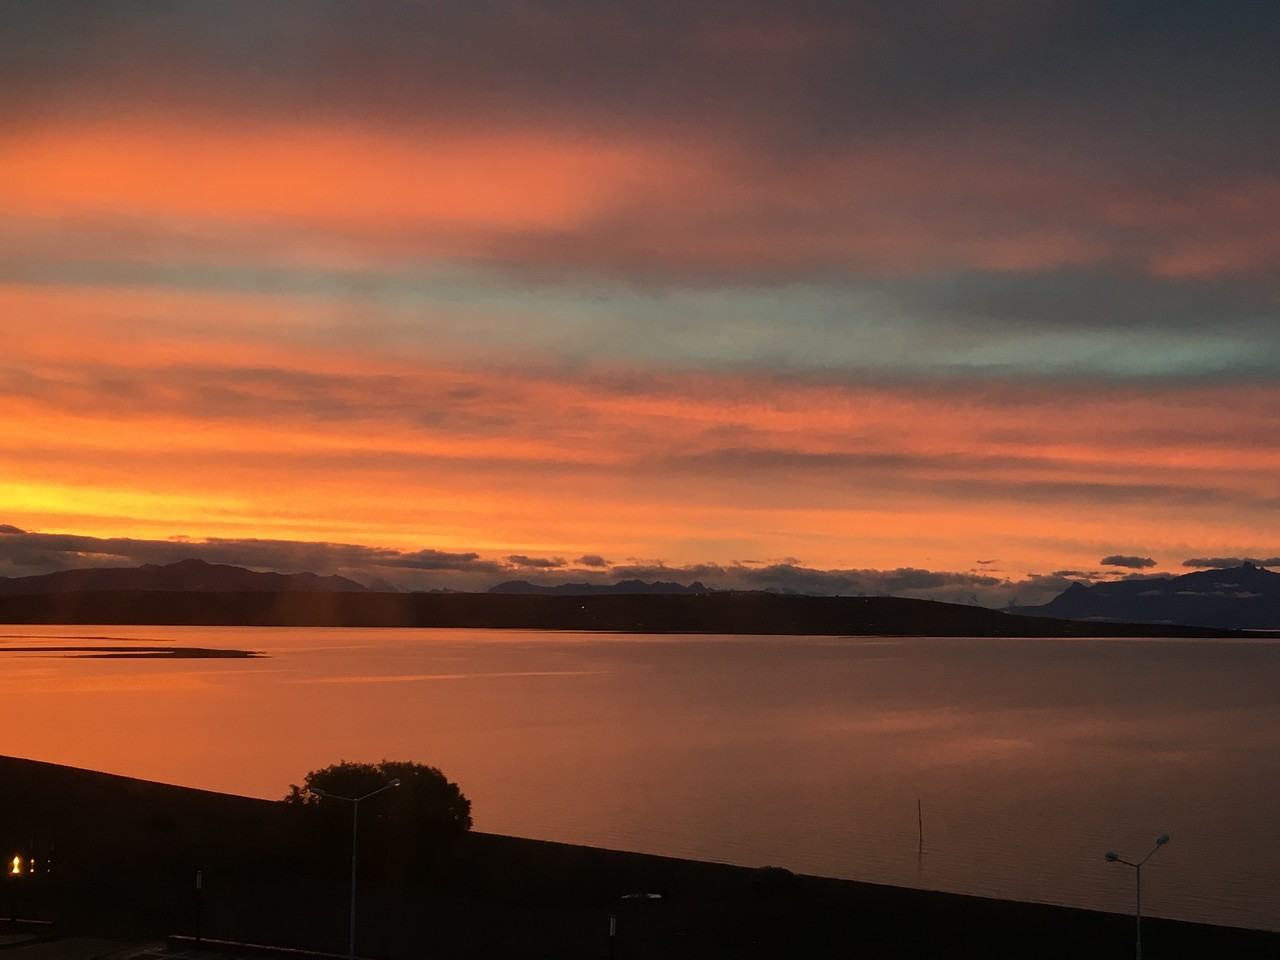 From our room-our last night in Argentina. Lago Argentina in all its glory.